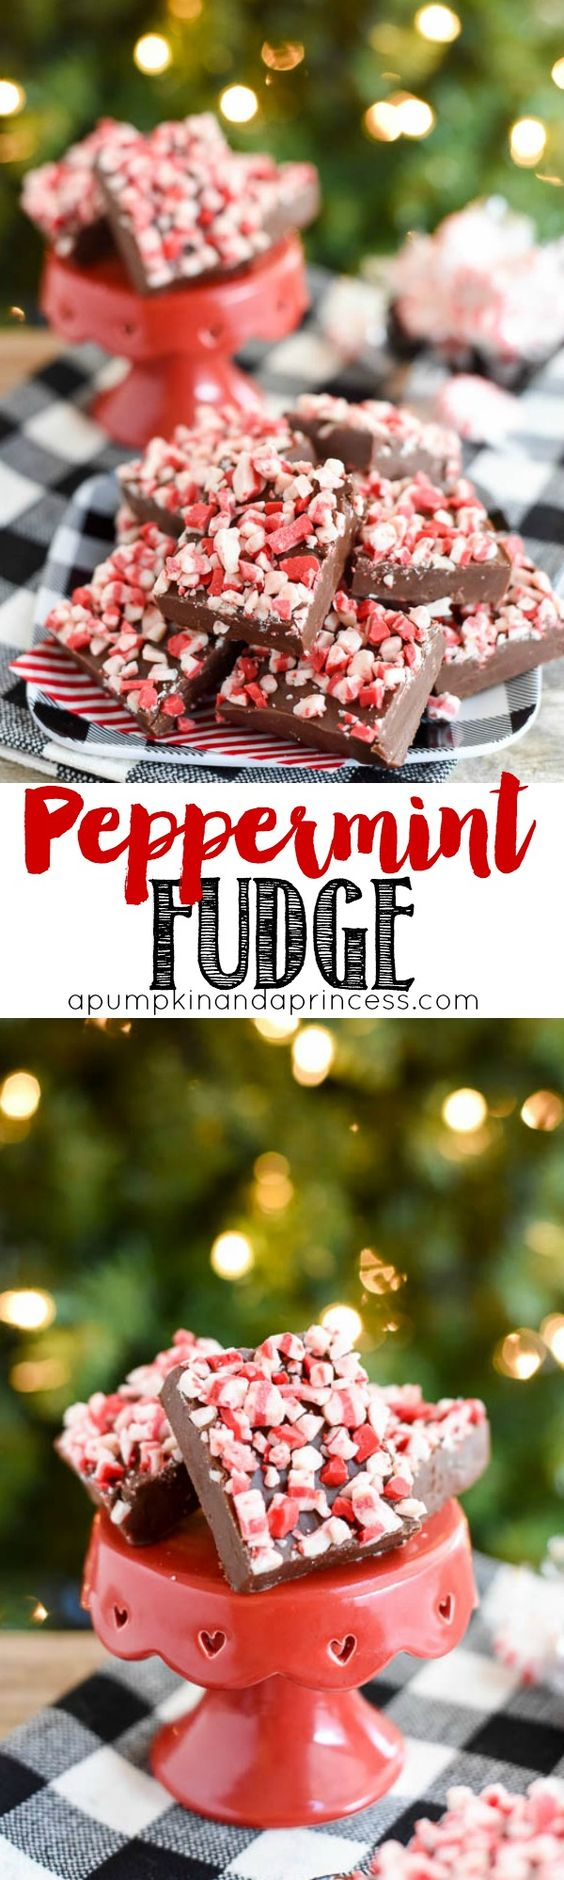 Peppermint Fudge Recipe - easy 5-ingredient peppermint fudge recipe MichaelsMakers A Pumpkin And A Princess